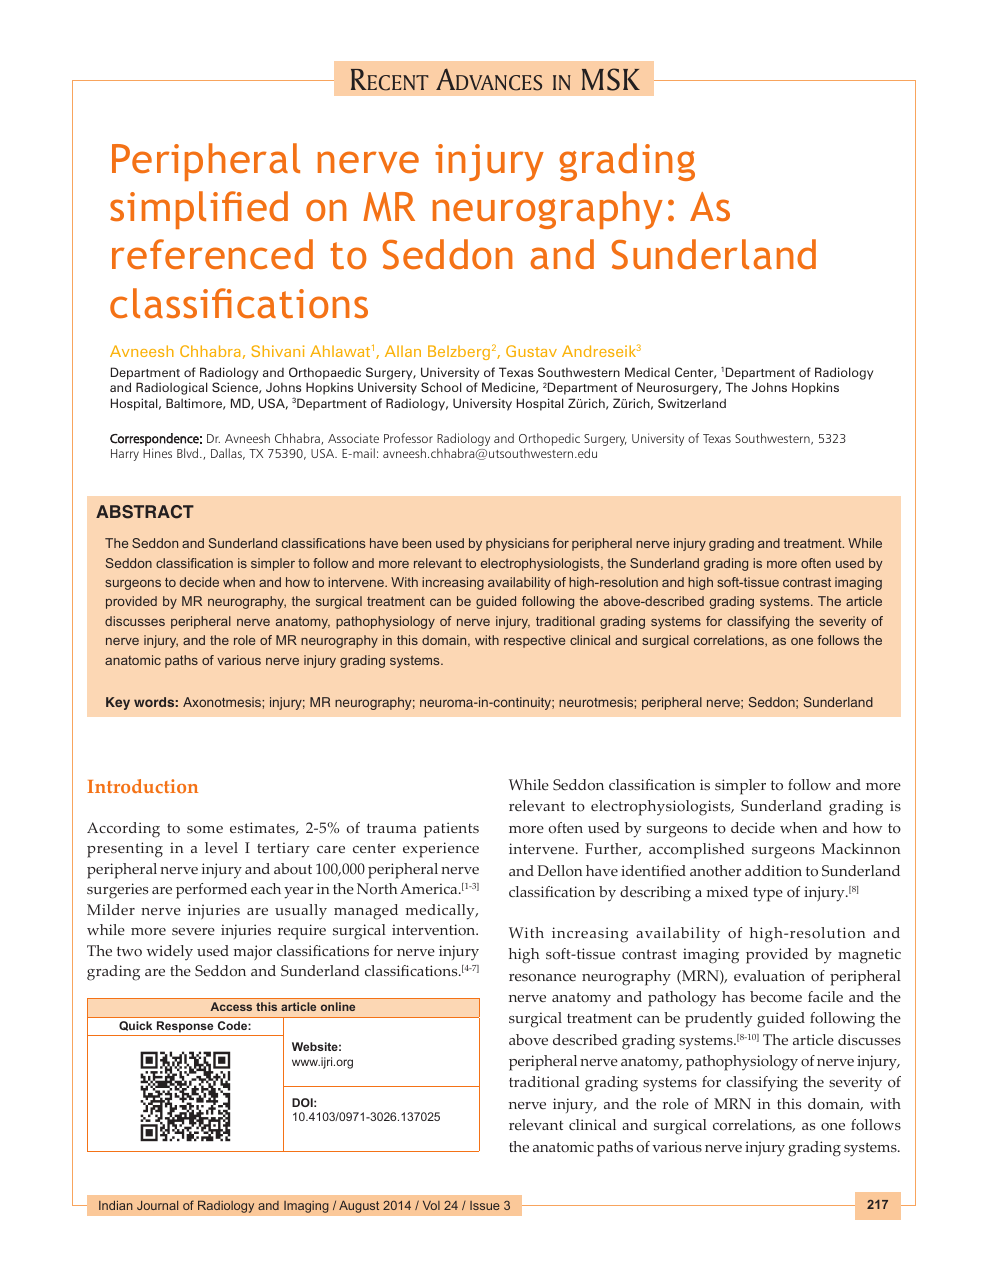 Peripheral nerve injury grading simplified on MR neurography: As